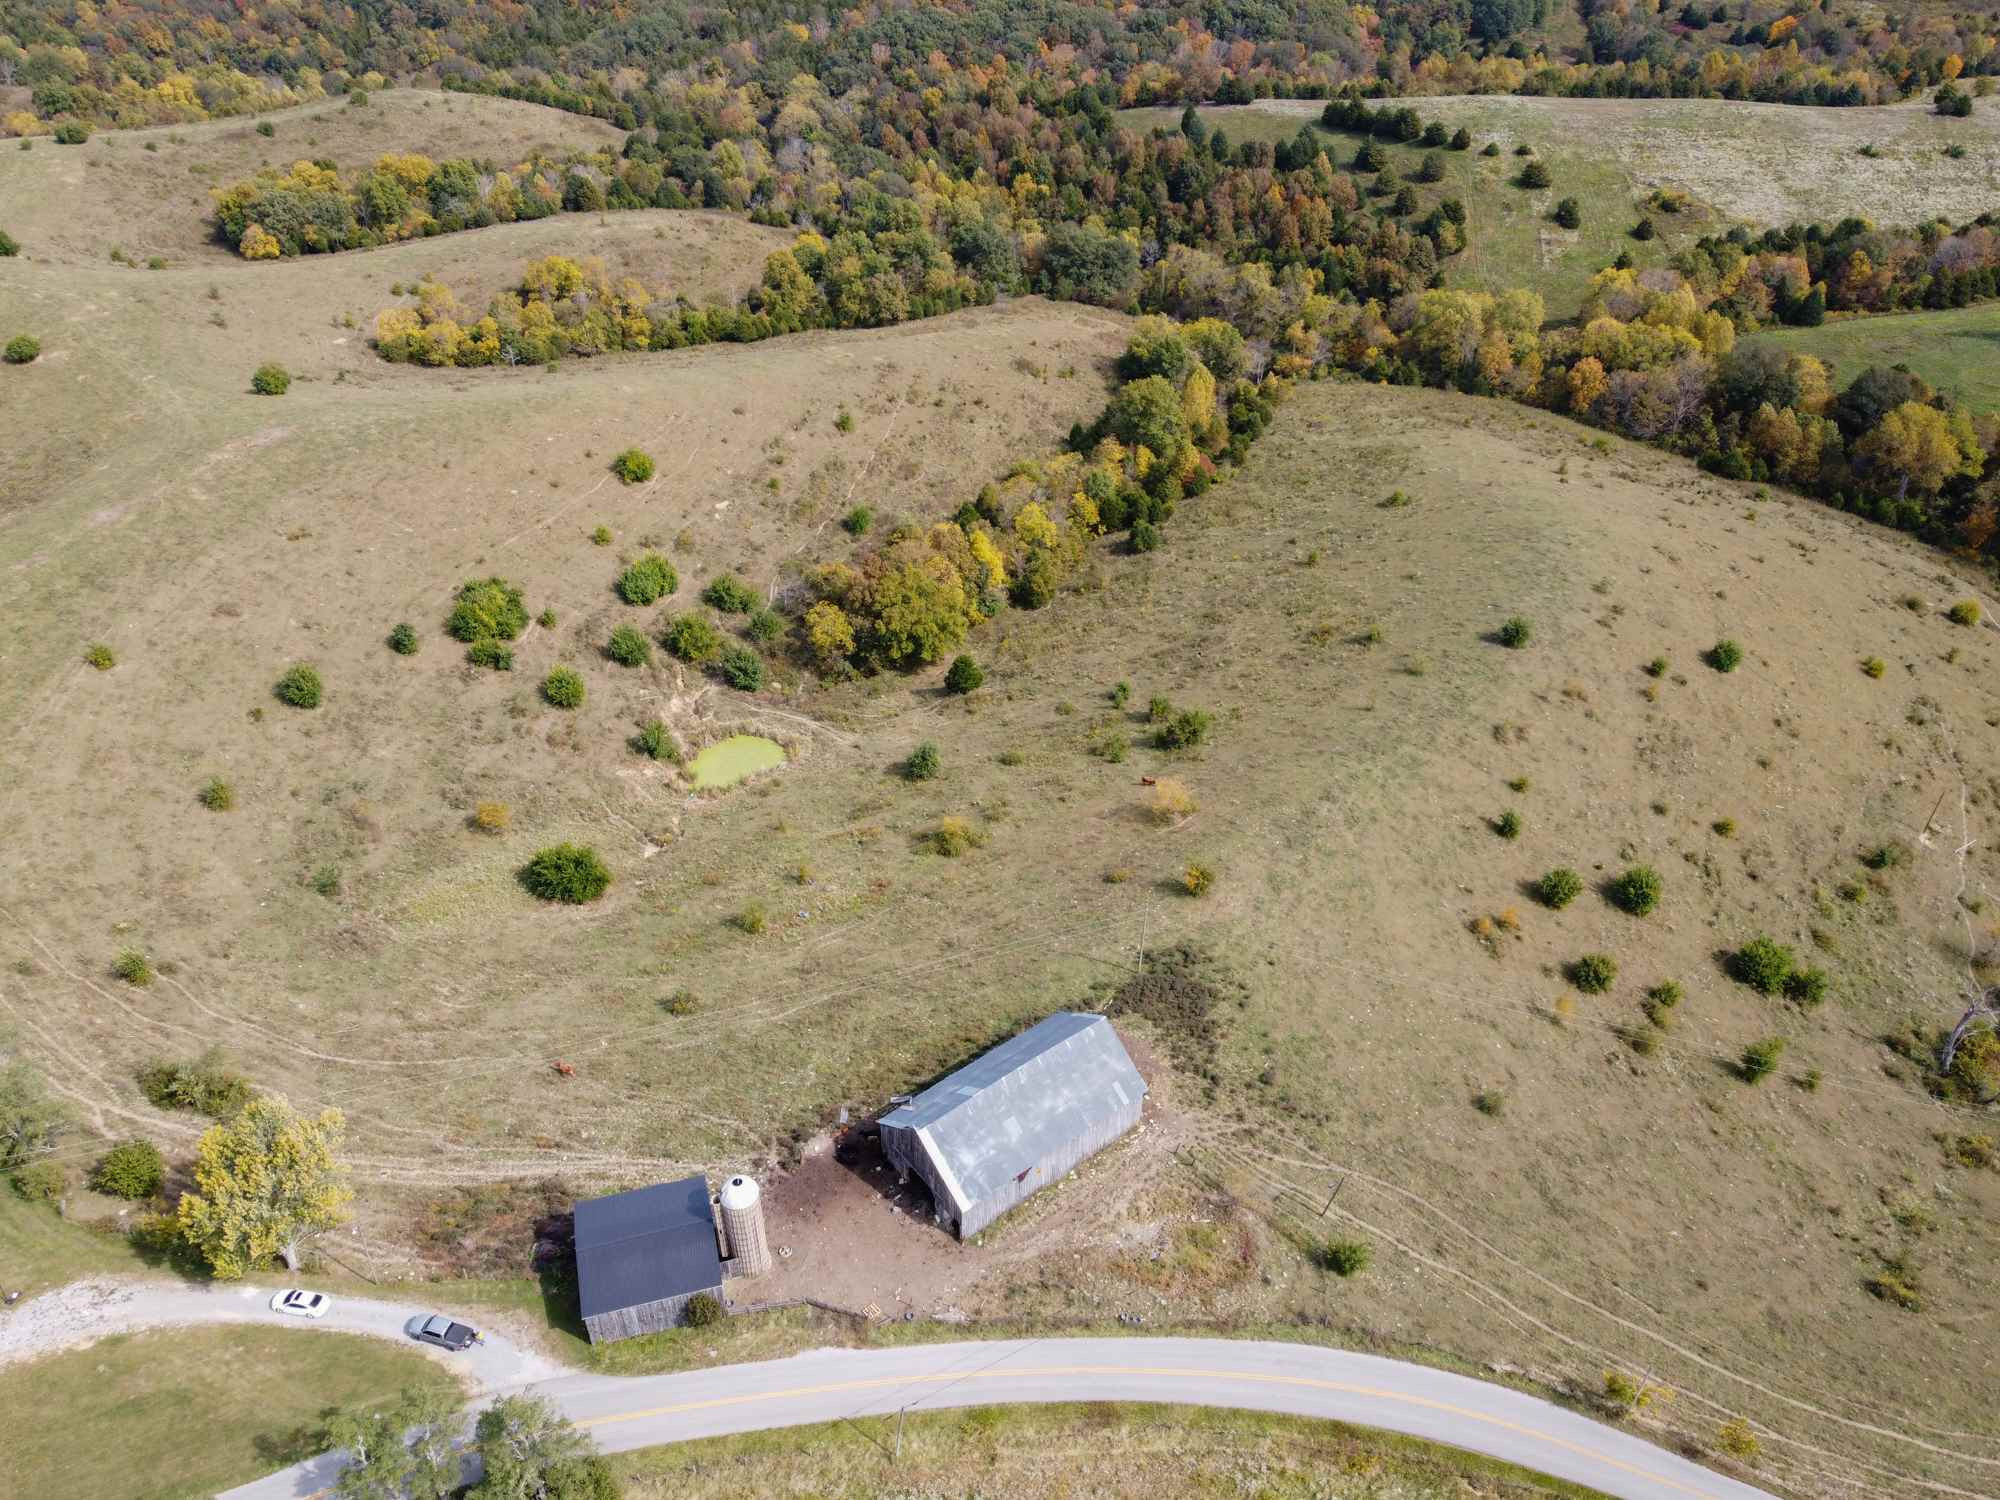 Photo 2 for 0 Keefer Road - 103 Acres Corinth, KY 41010